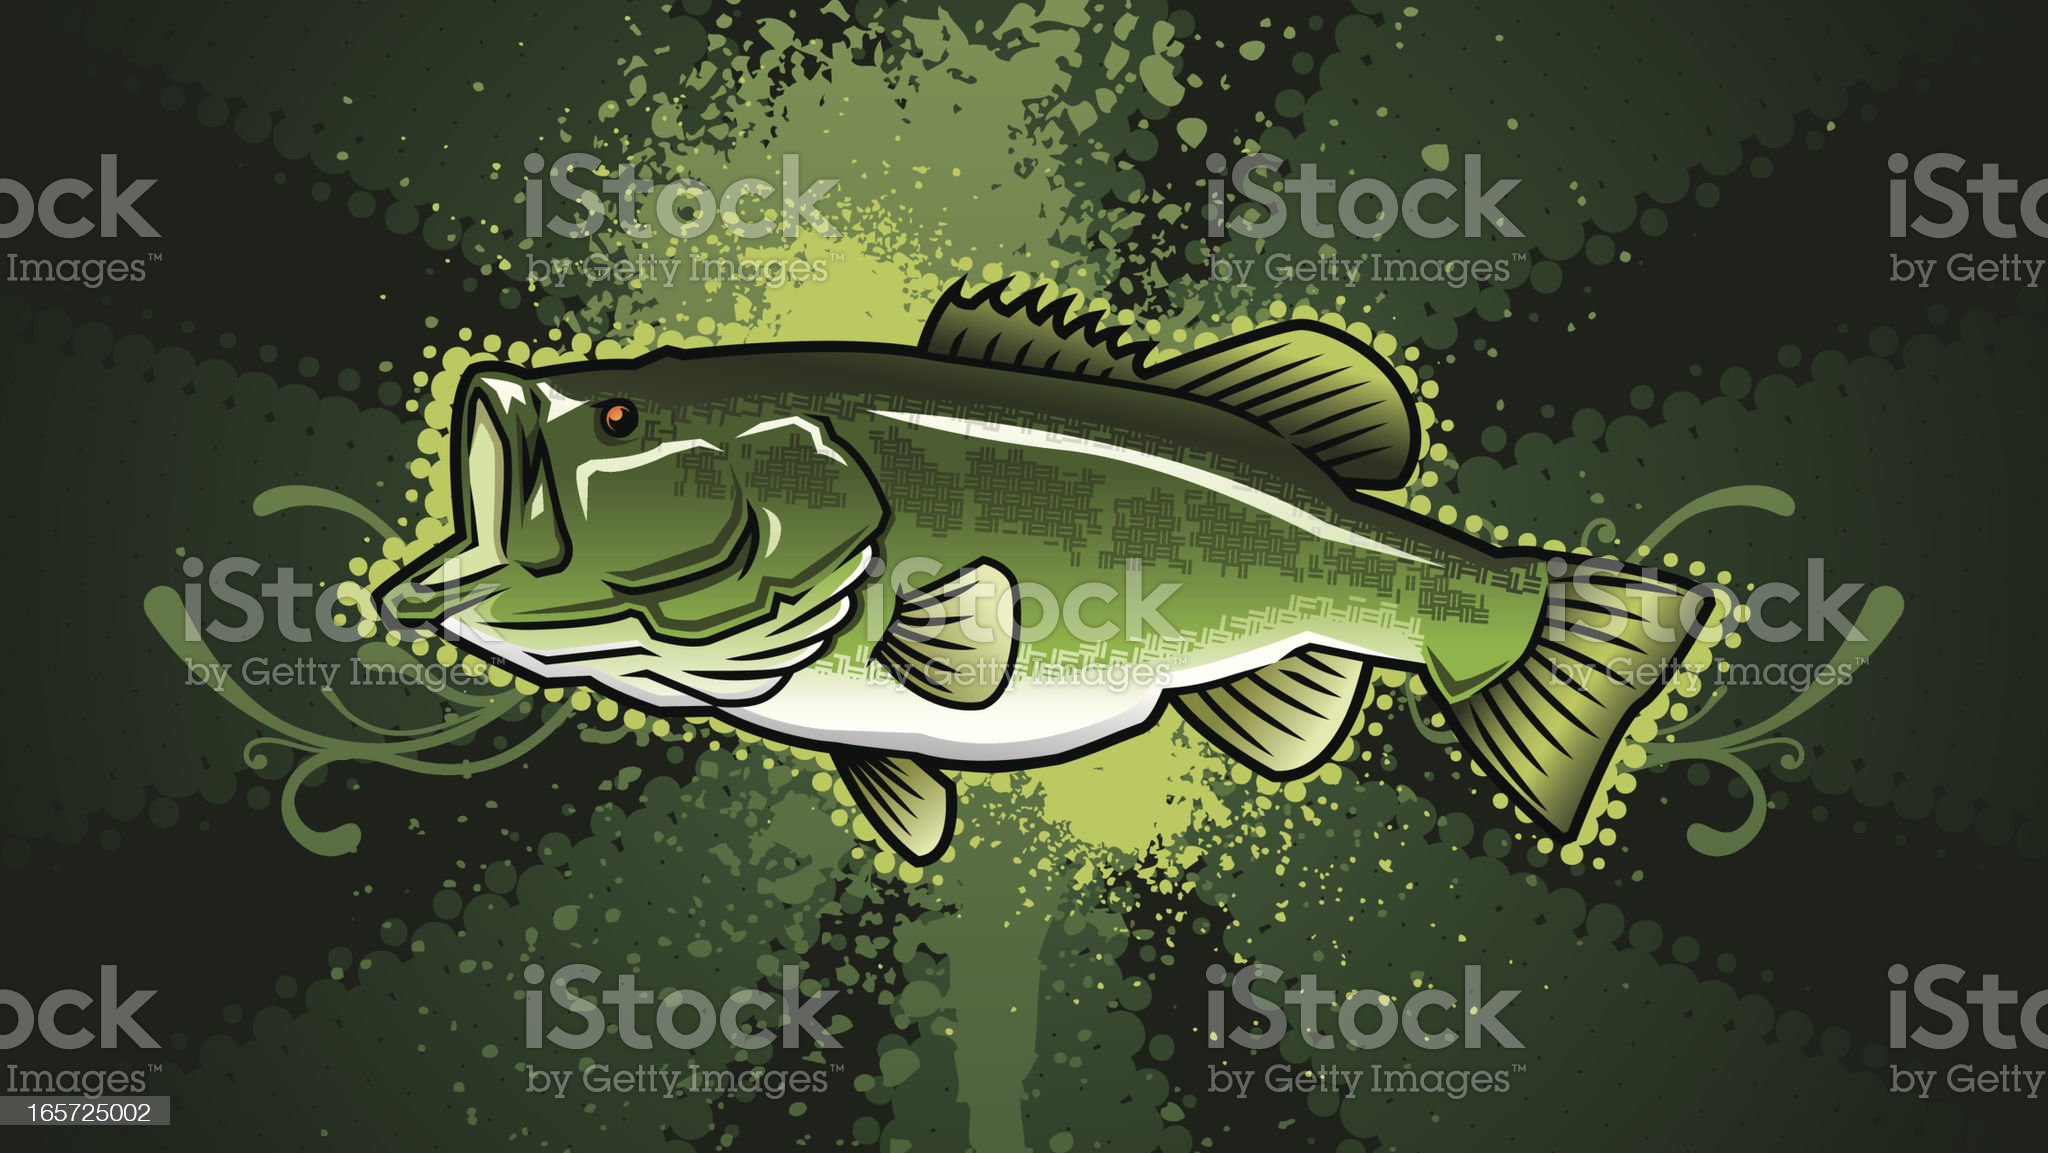 Largemouth Bass Design royalty-free stock vector art